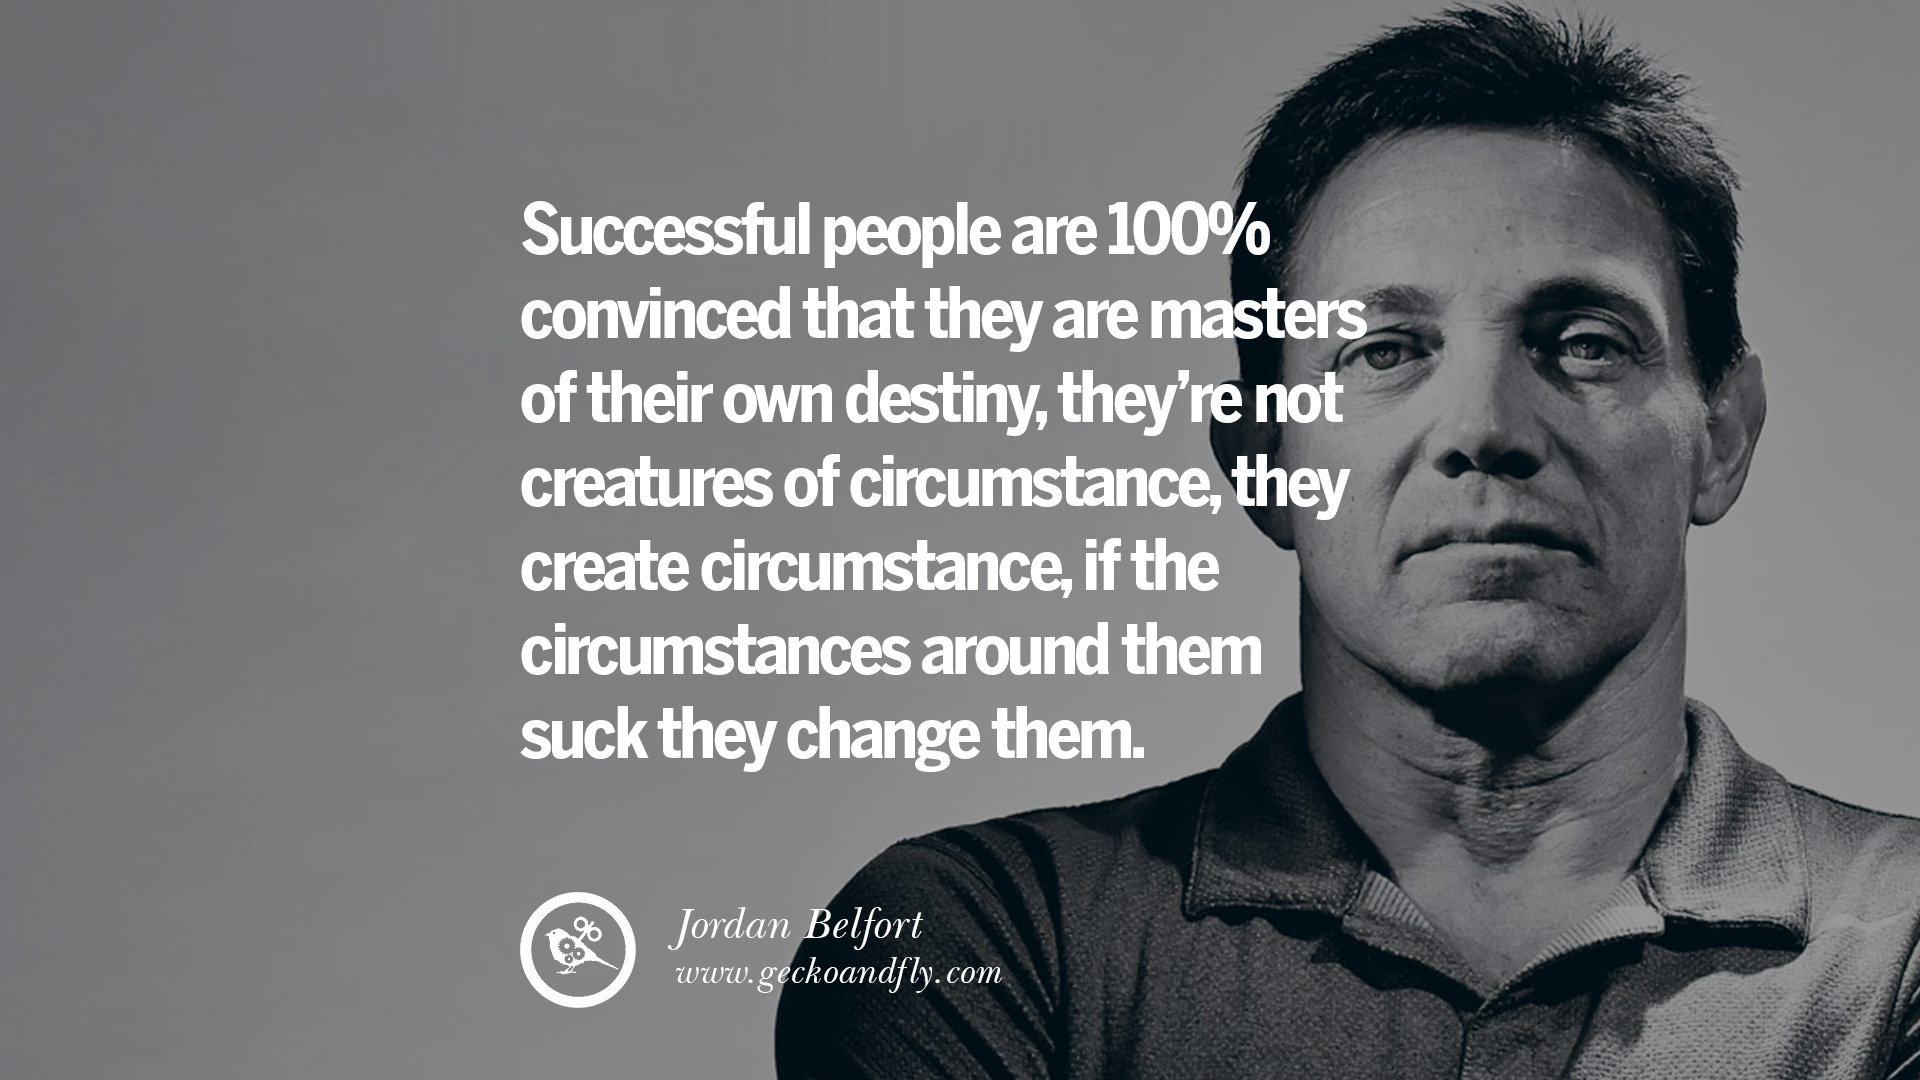 Wall Street Quotes Awesome 13 Empowering Jordan Belfort Quotes As Seen In Wolf Of Wall Street